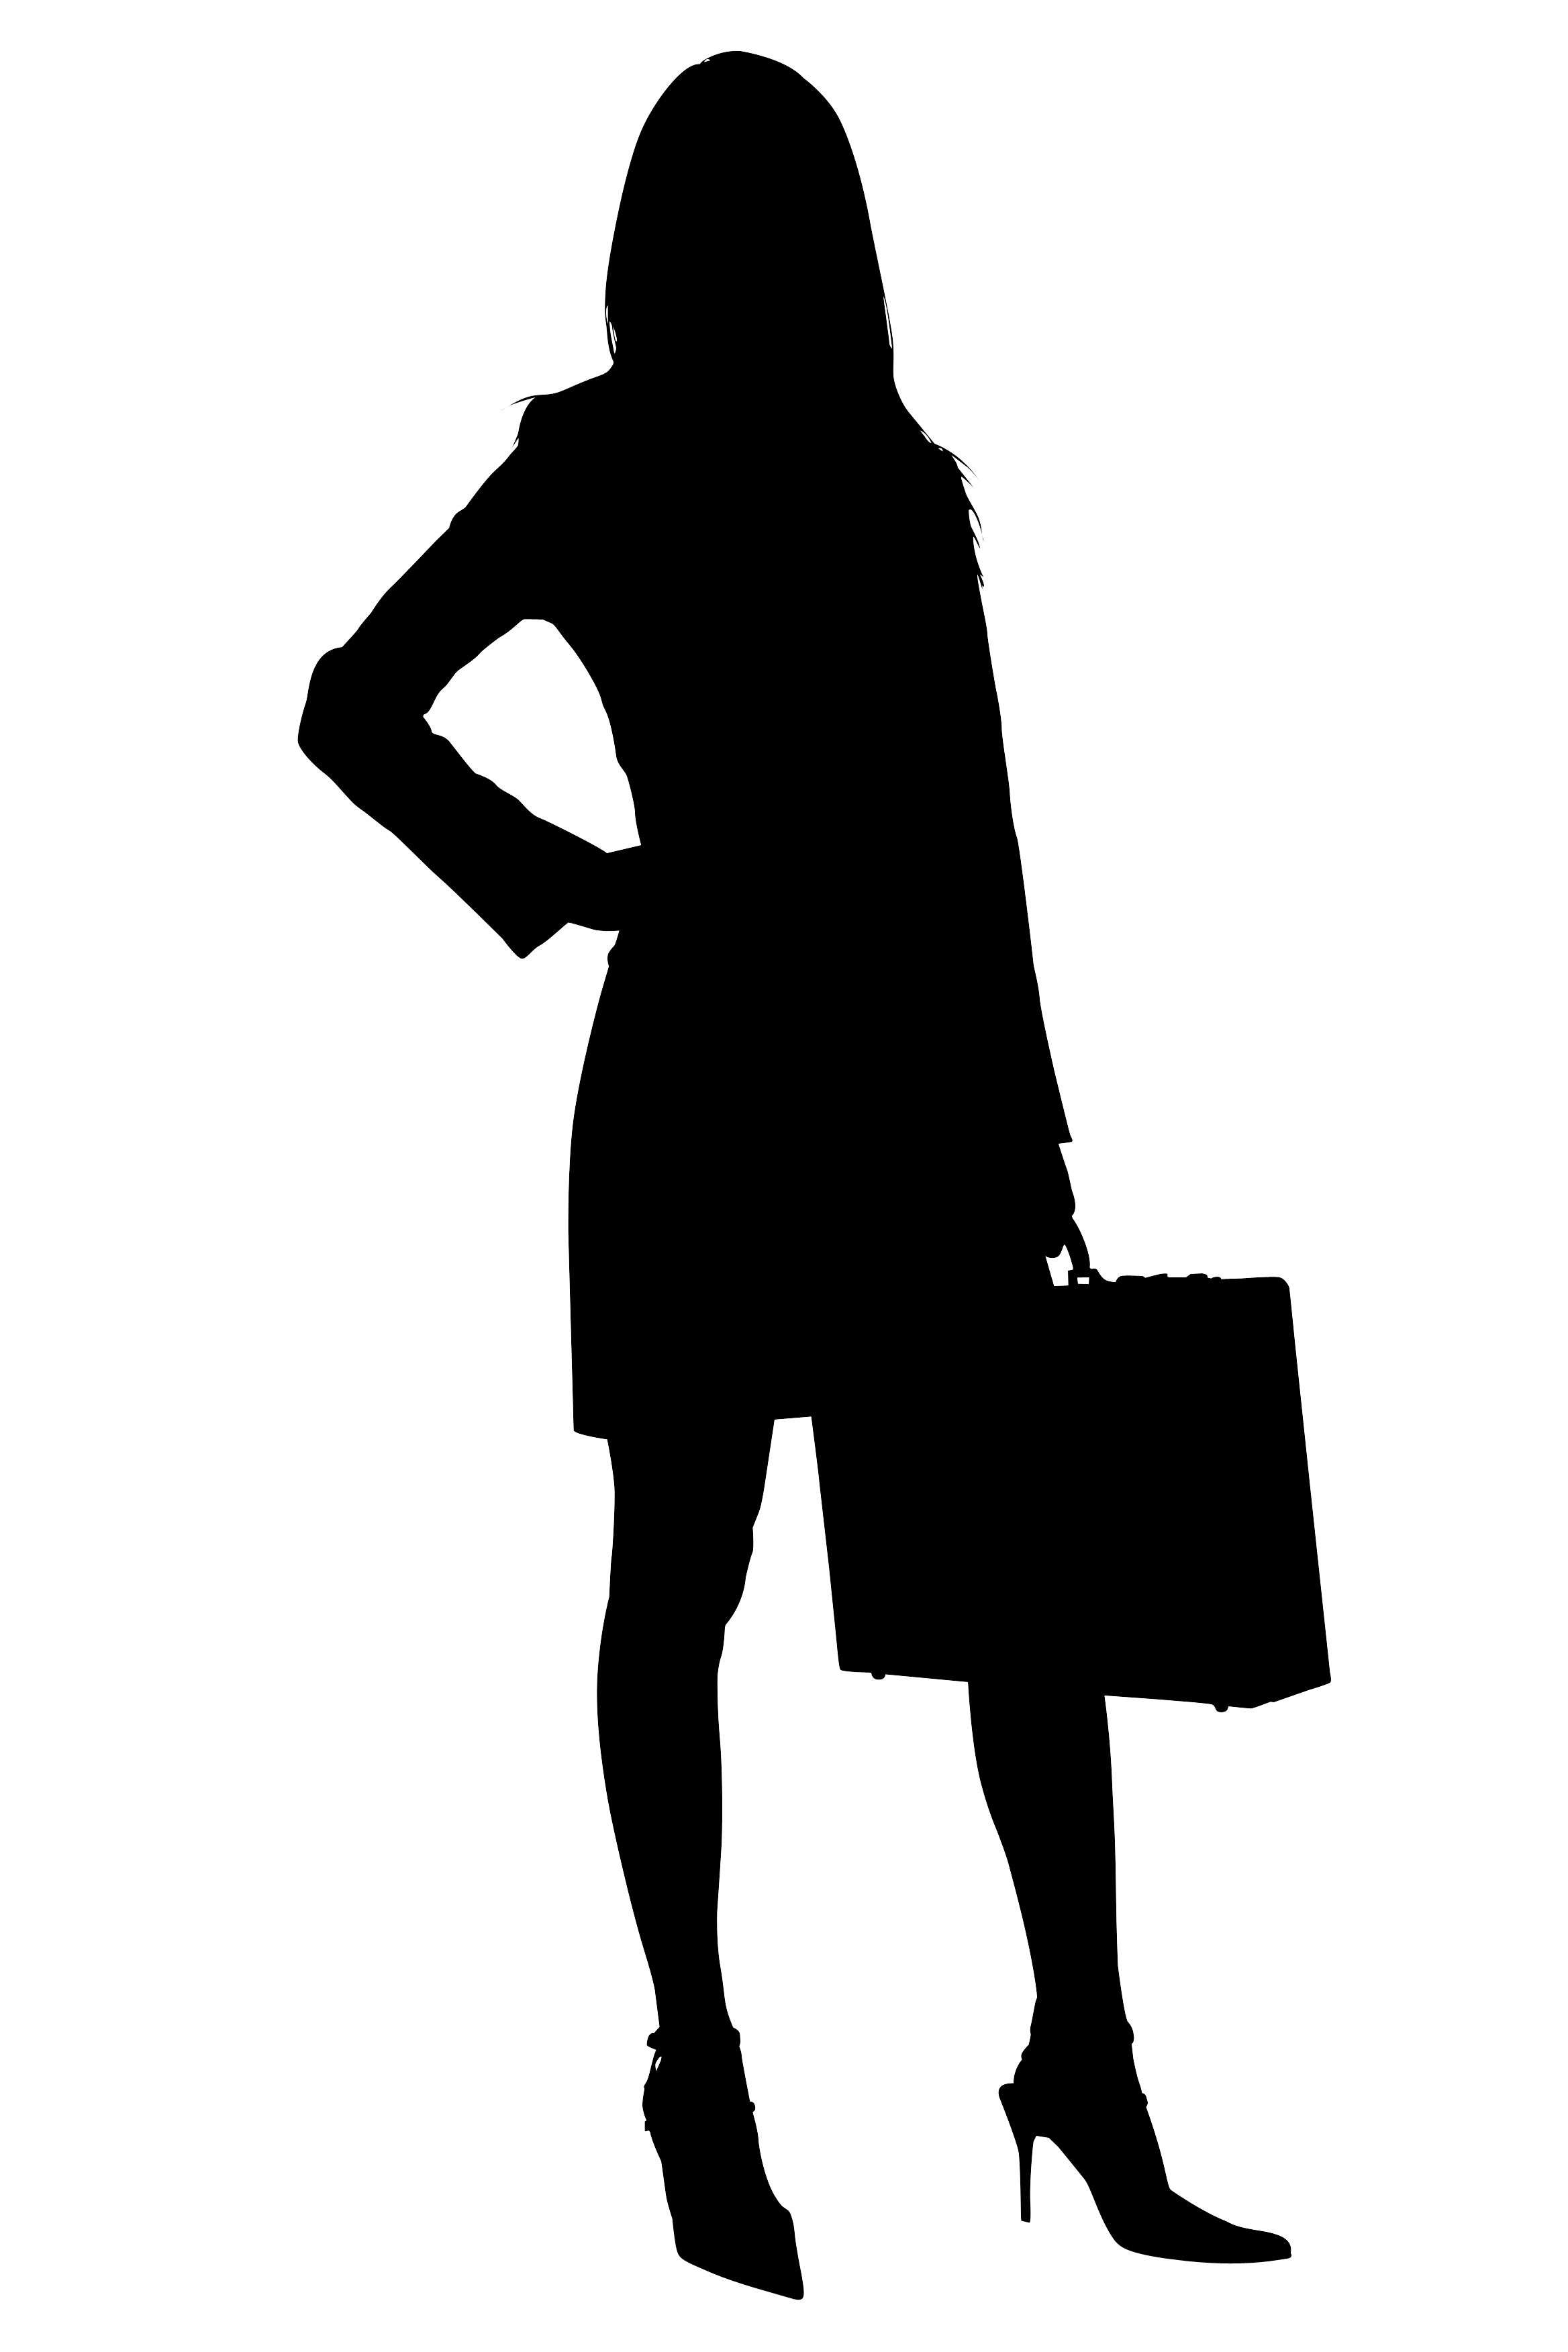 Artist achievement clipart sillohuette clipart transparent download Silhouette With Clipping Path of Business Woman with Briefcase ... clipart transparent download